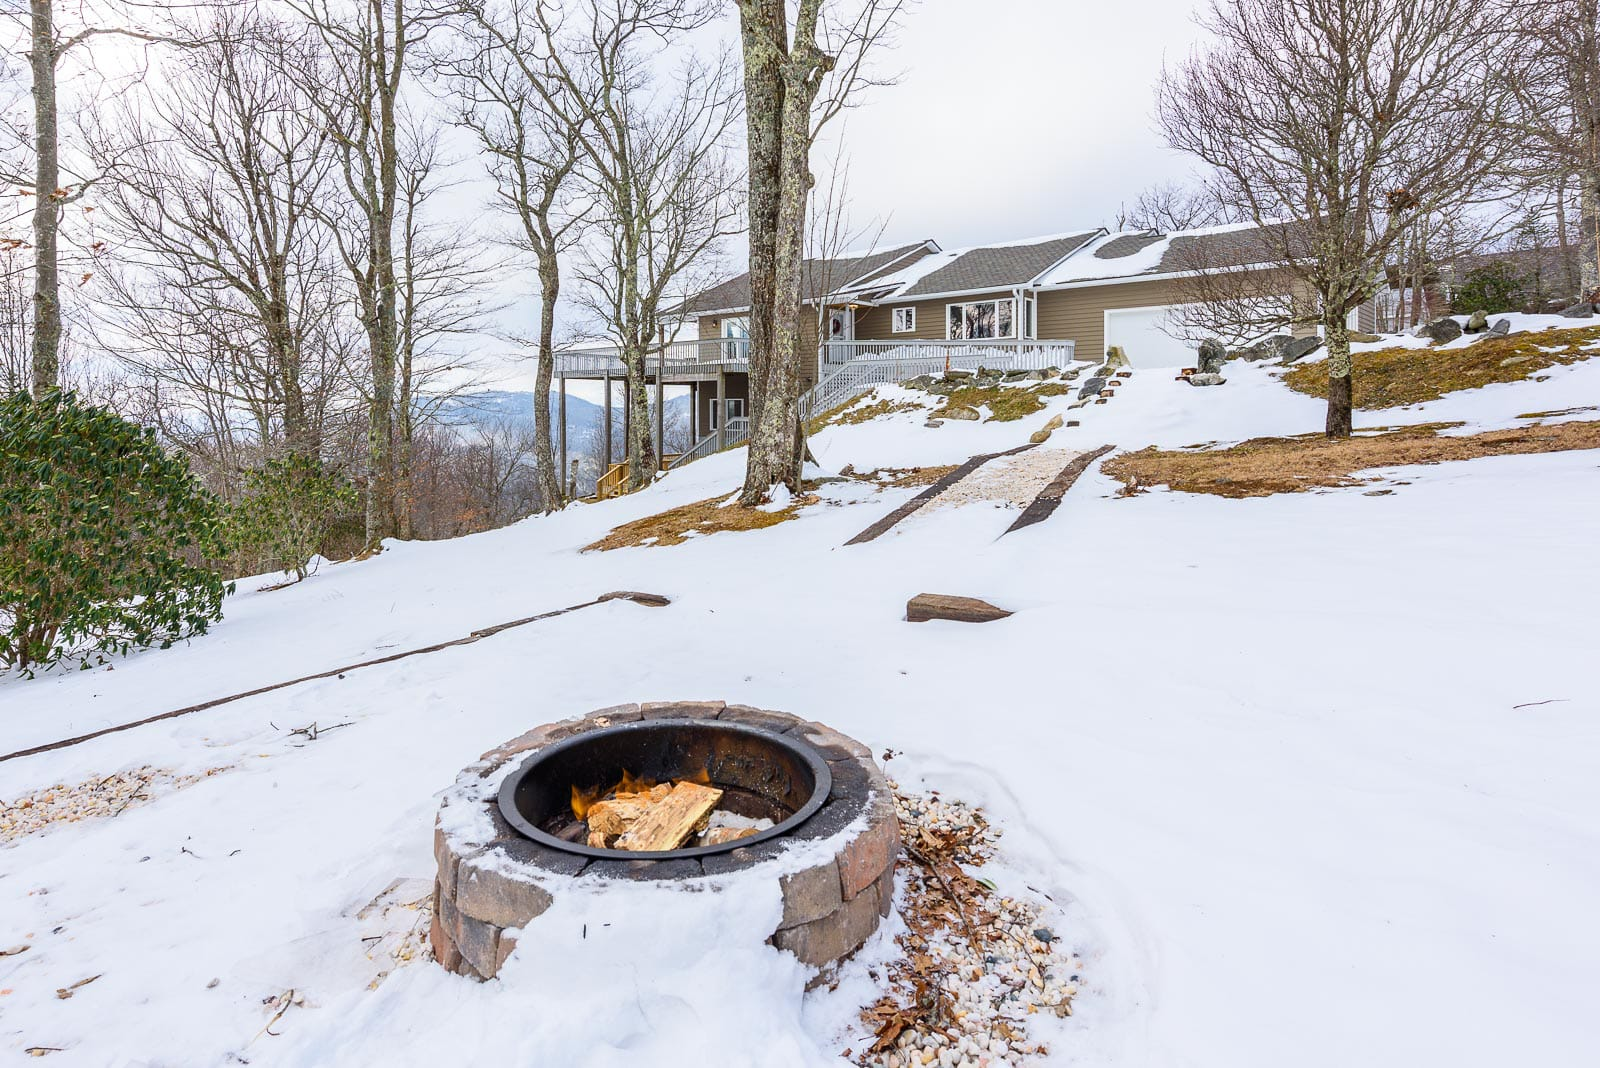 Wood Fire Pit in Side Yard, covered in Fresh Snow